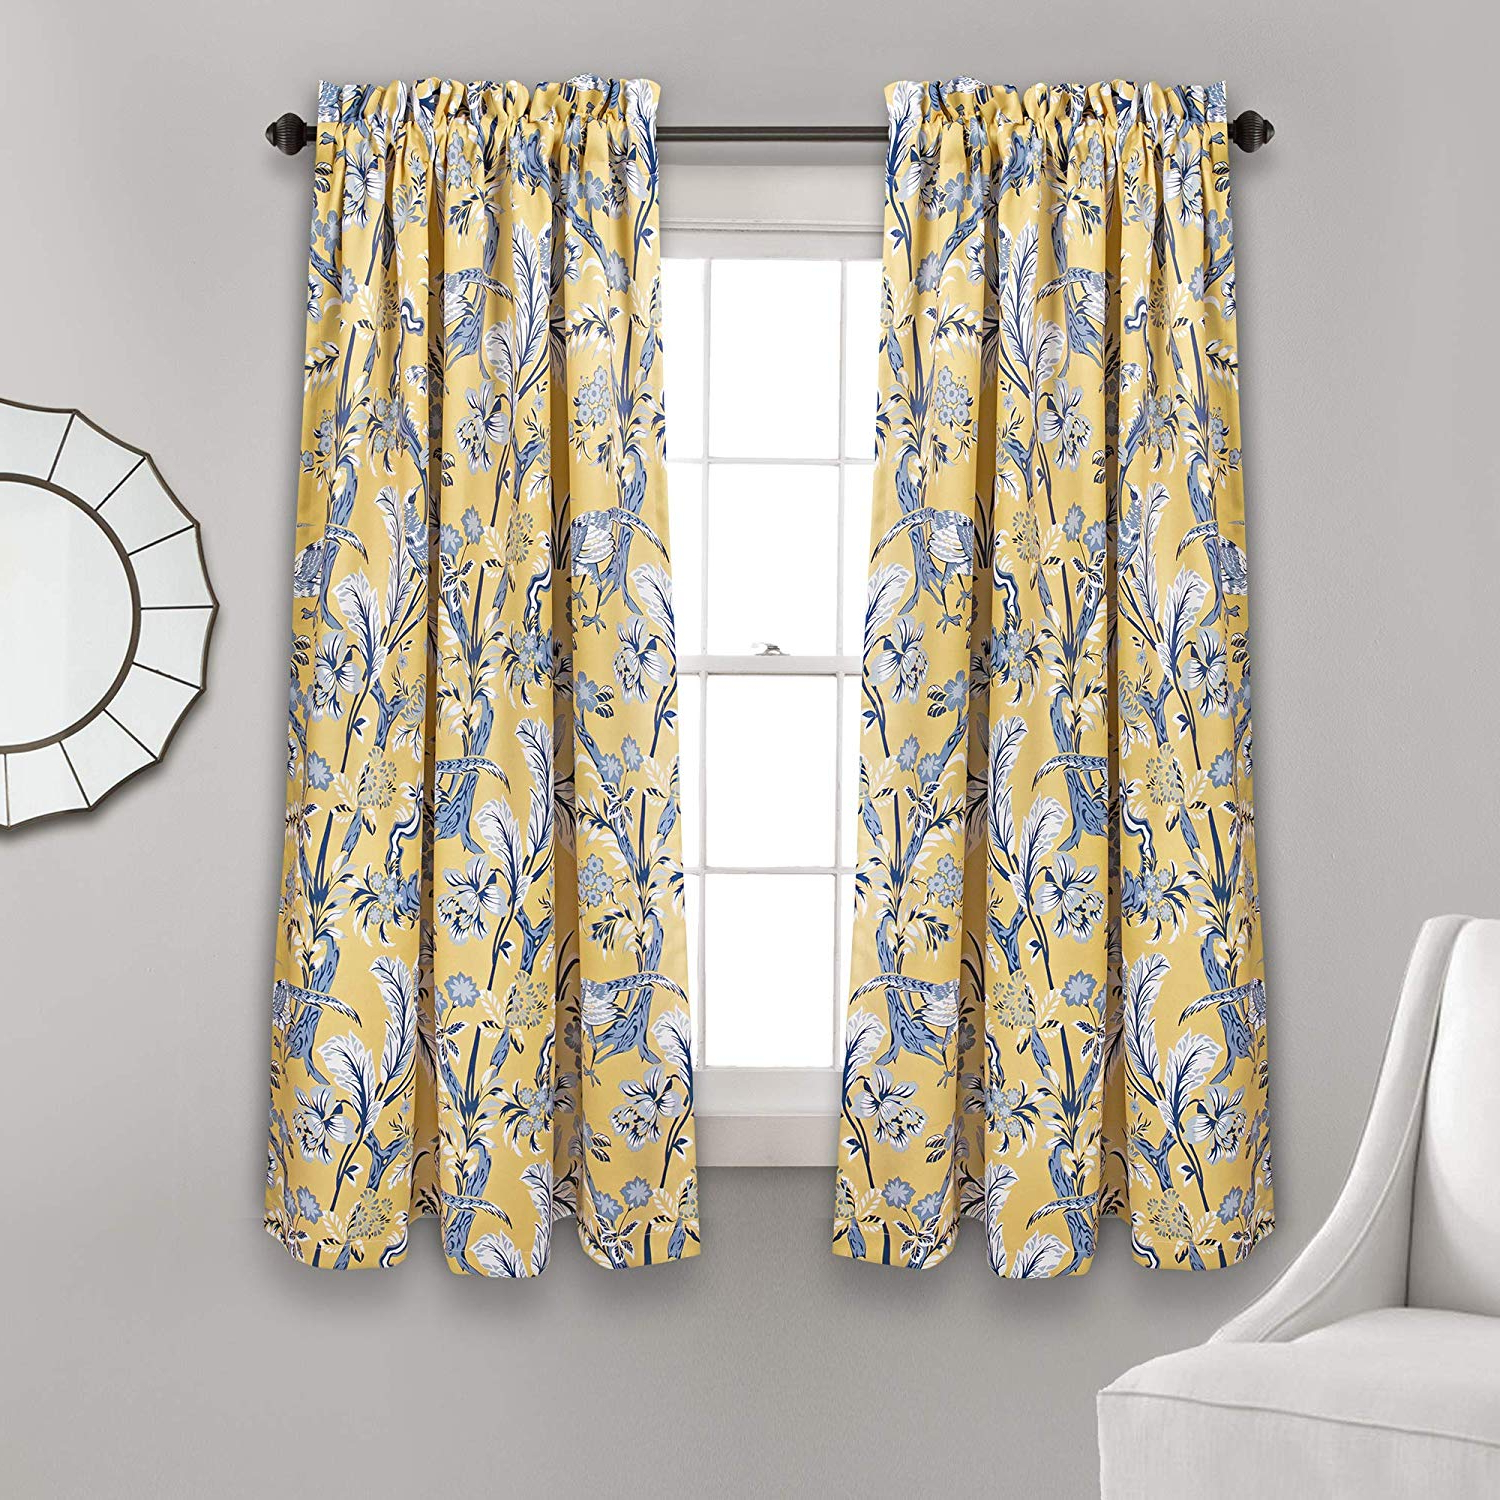 """Most Current Dolores Room Darkening Floral Curtain Panel Pairs Throughout Lush Decor Curtains Dolores Darkening Window Panel Set For Living, Dining Room, Bedroom (pair), 63"""" X 52"""", Yellow And Blue, 63"""" L (View 9 of 20)"""